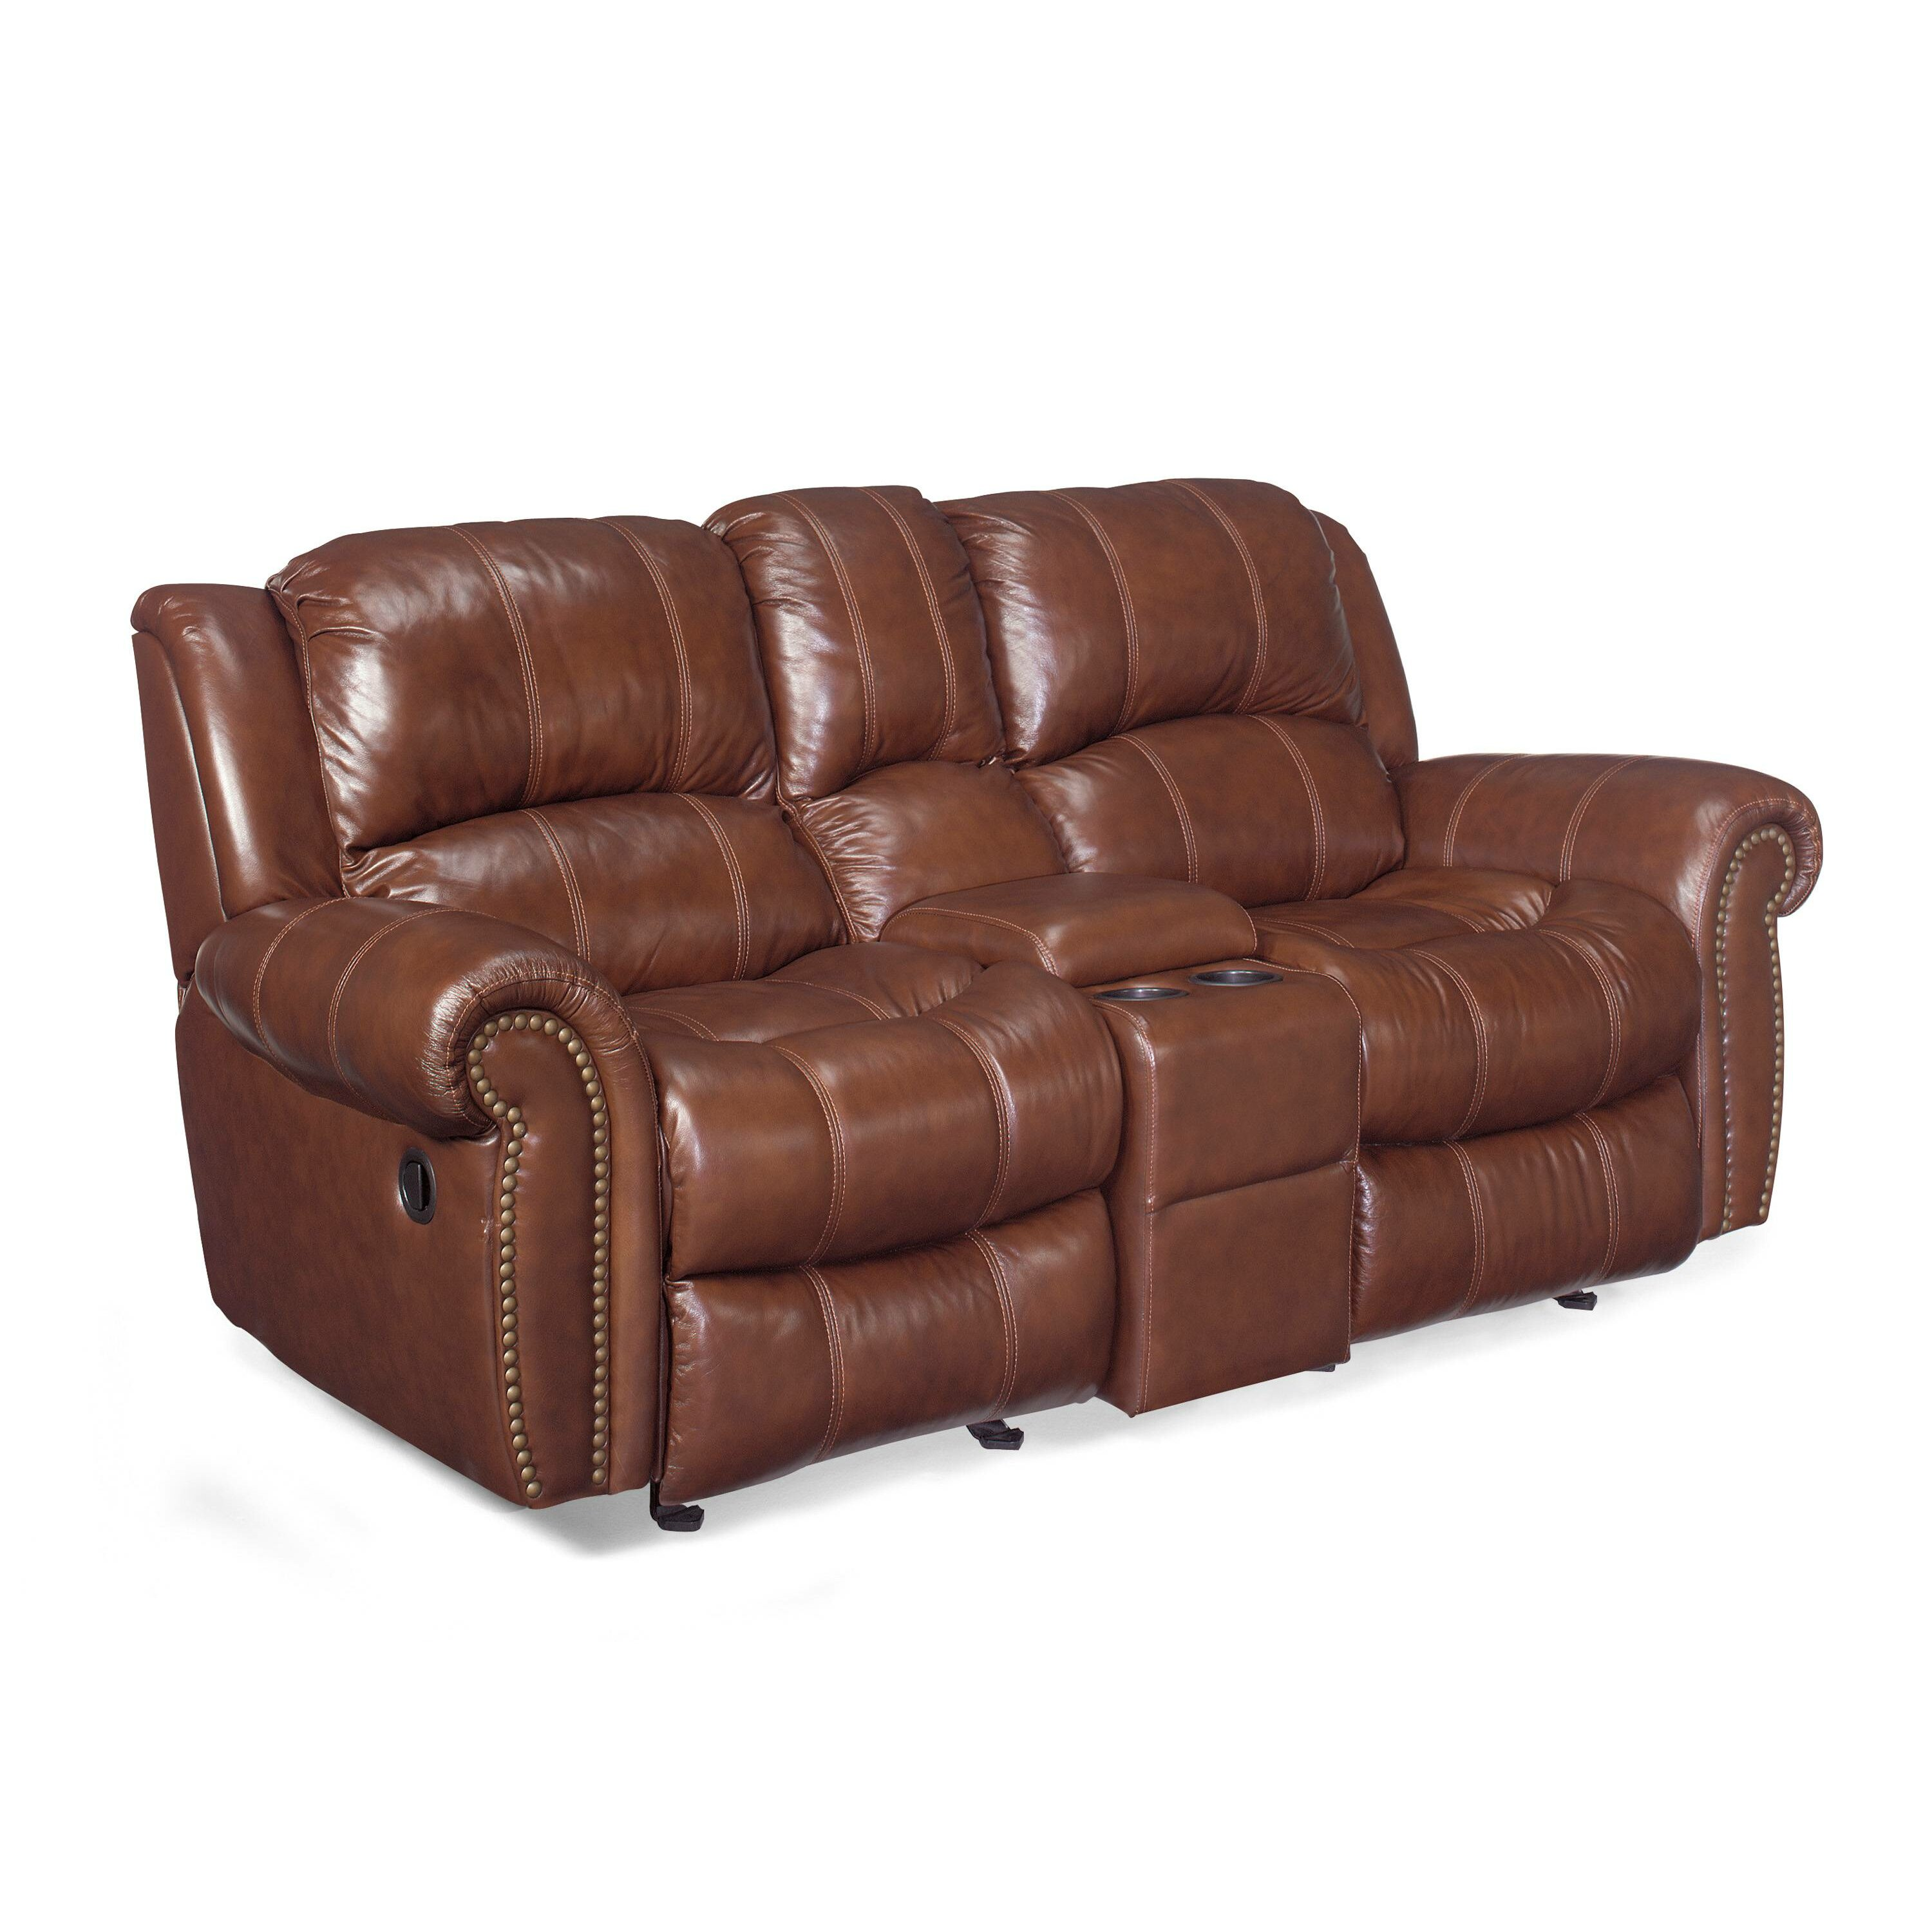 Leather Sofas Reviews: Hooker Furniture Entertainment 2 Glider Leather Reclining